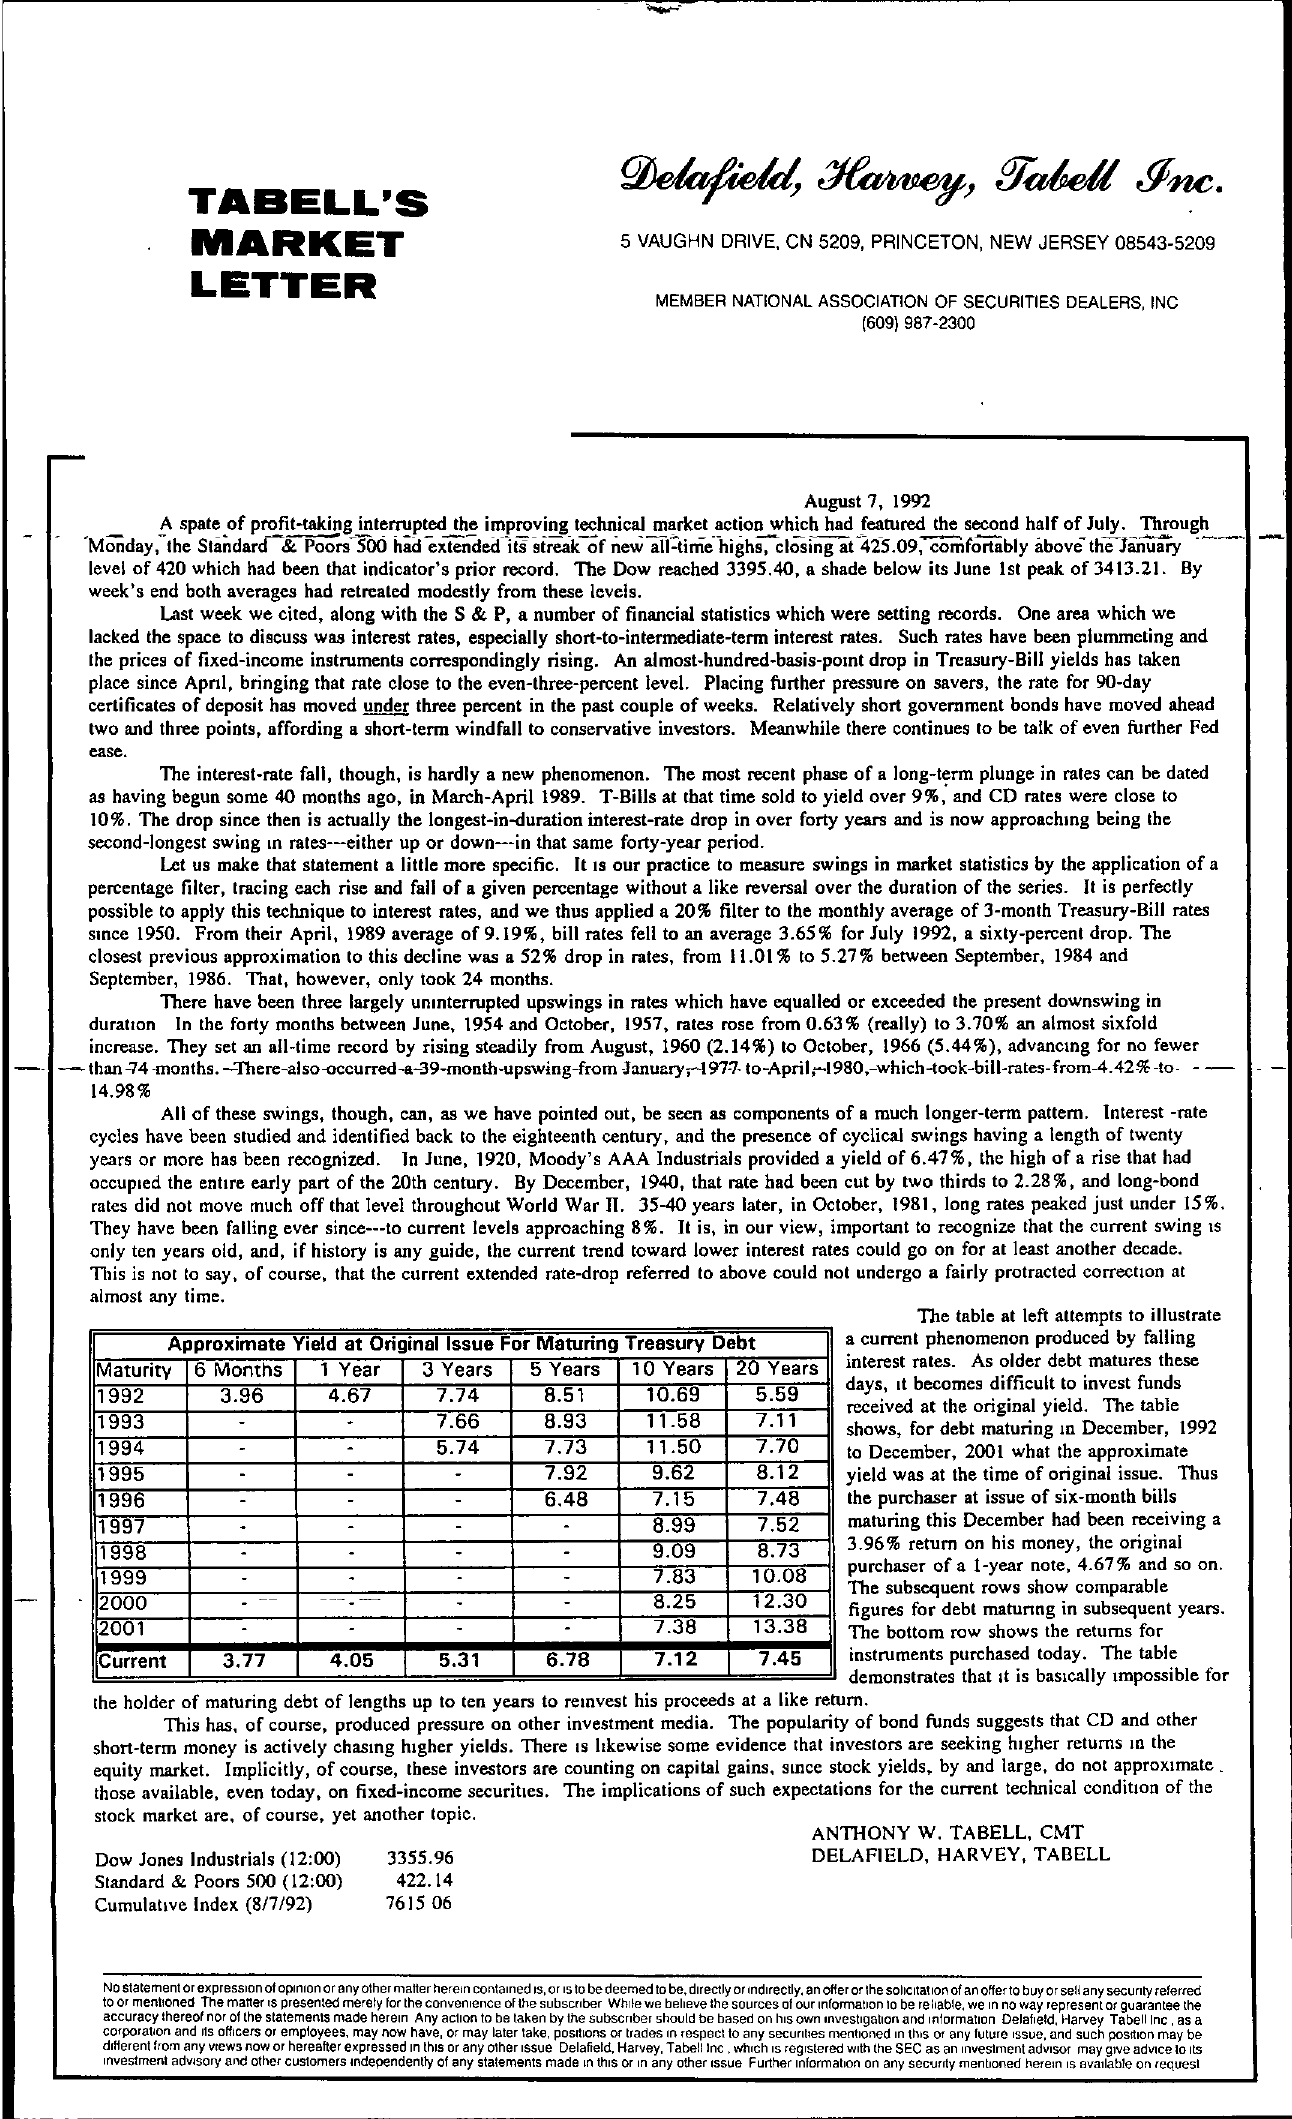 Tabell's Market Letter - August 07, 1992